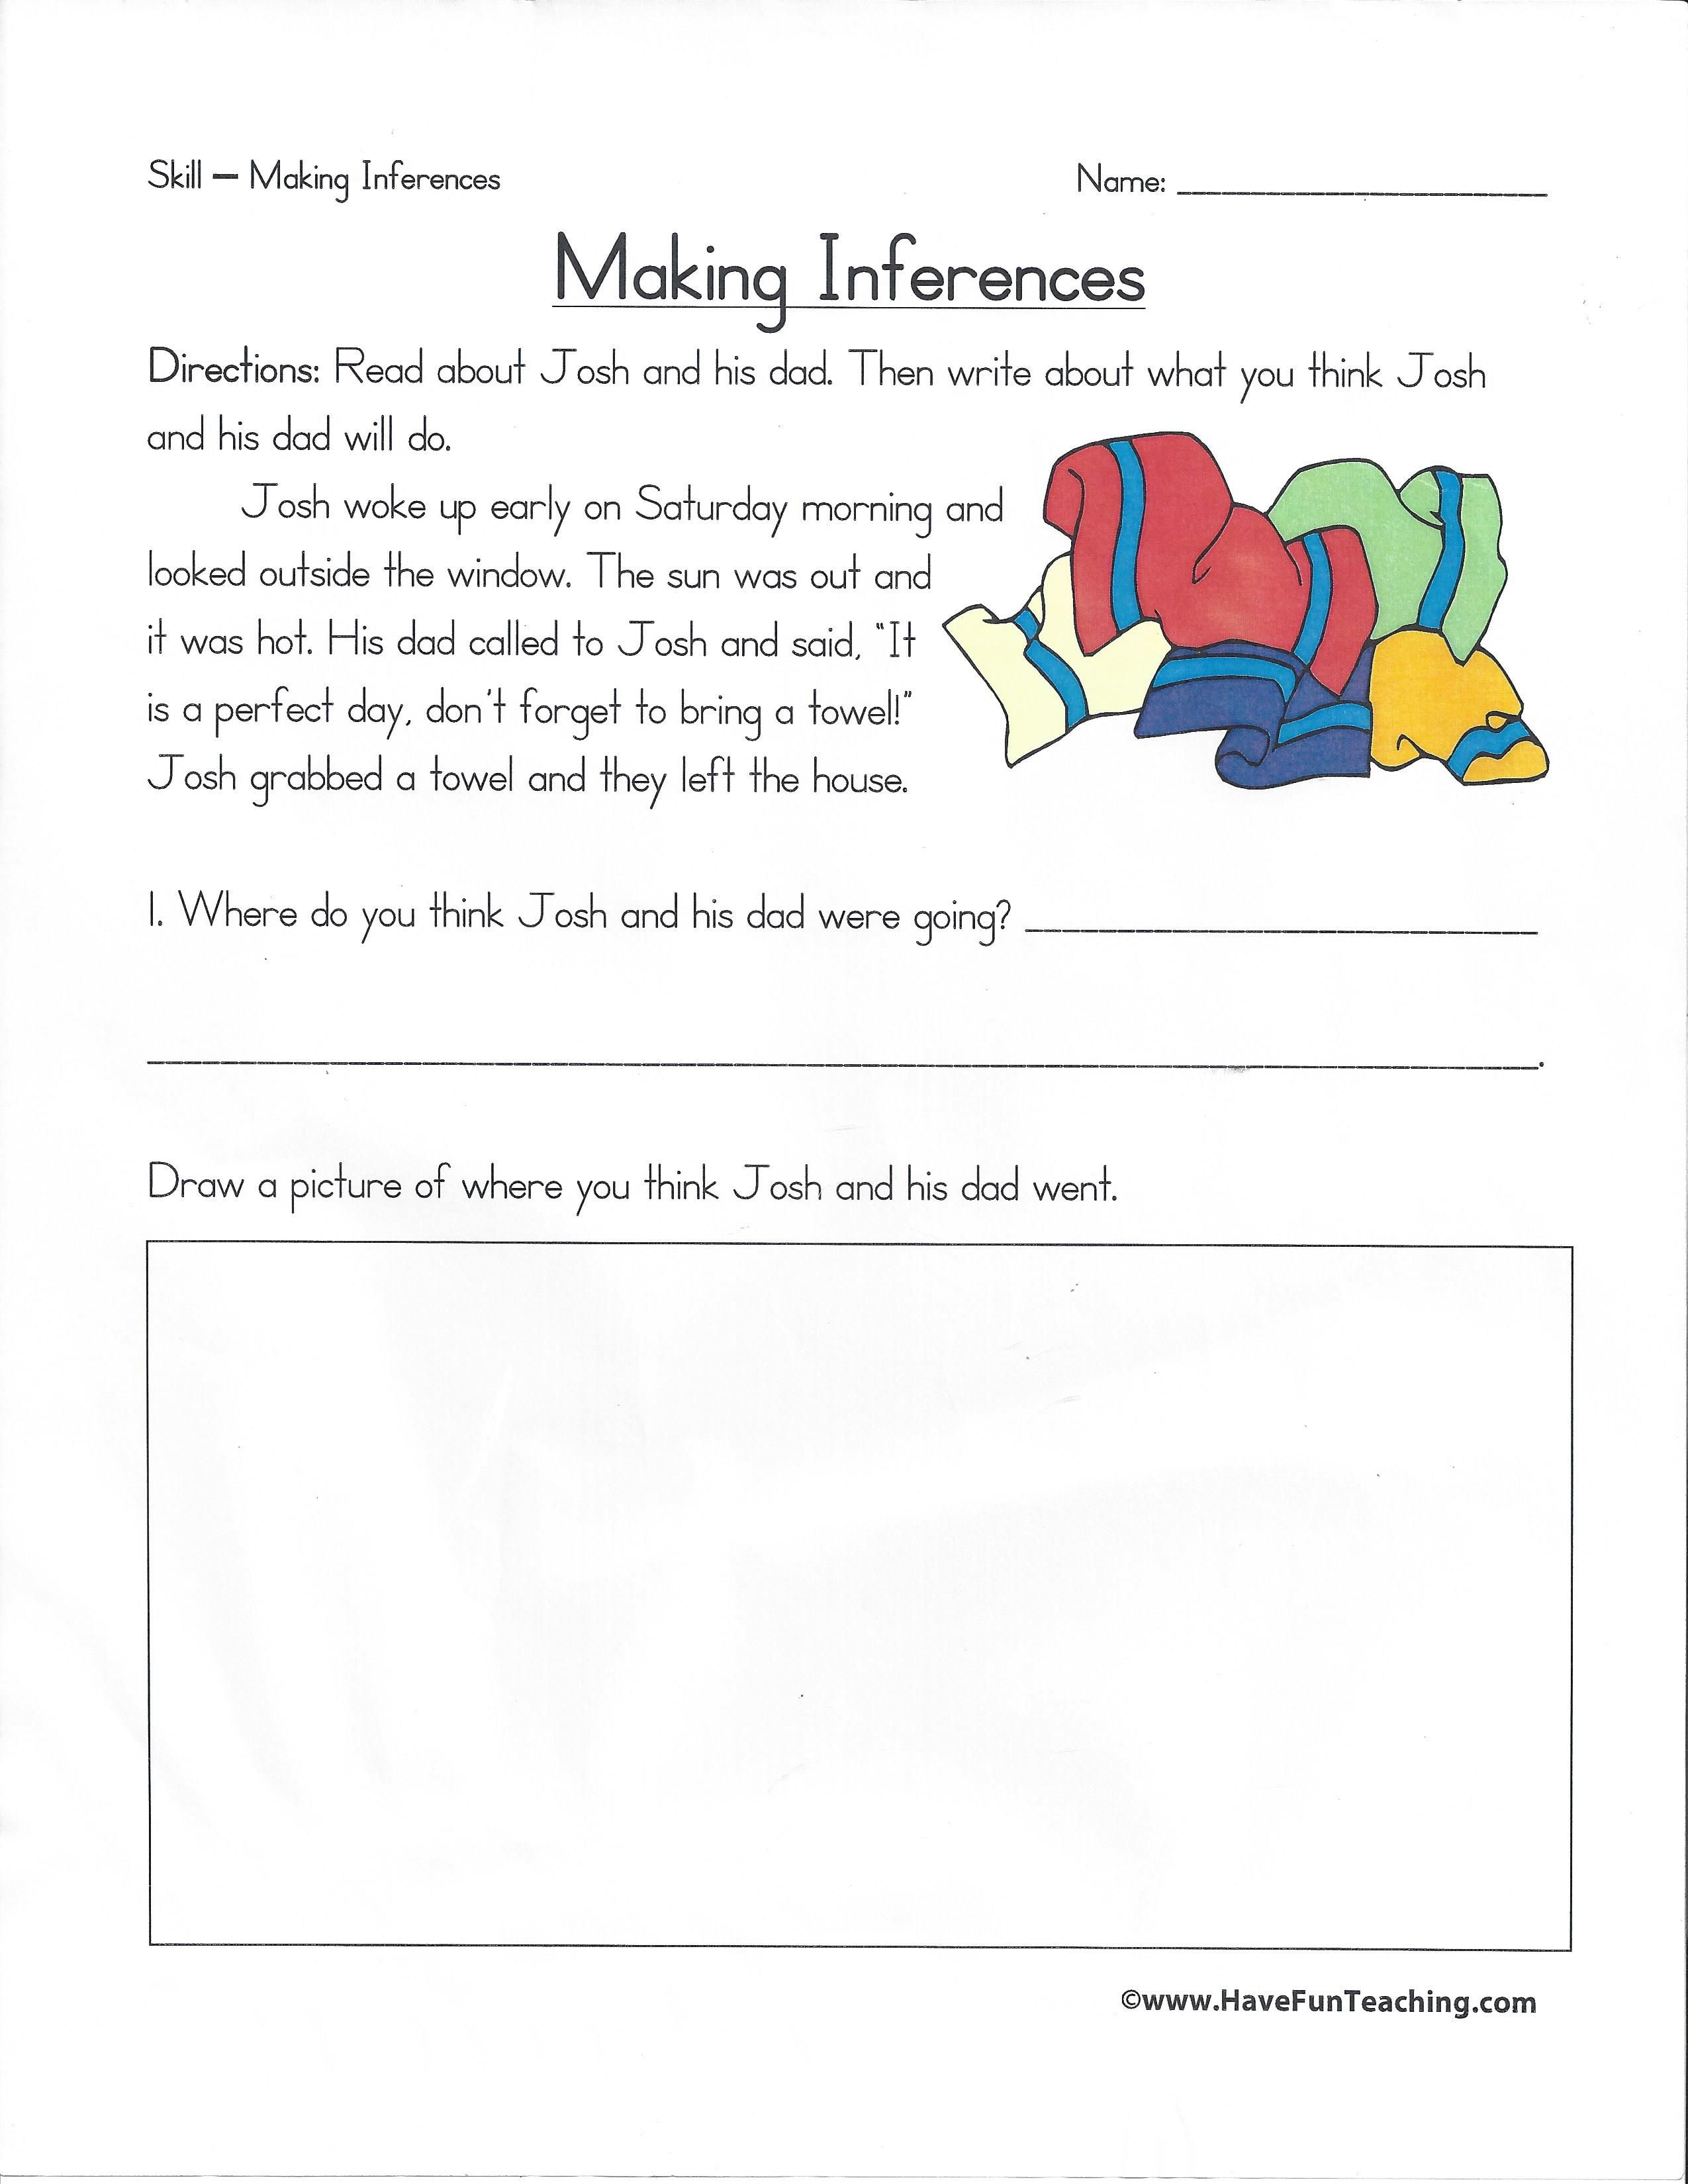 Making Inferences Visit Us At 8speech And Meet